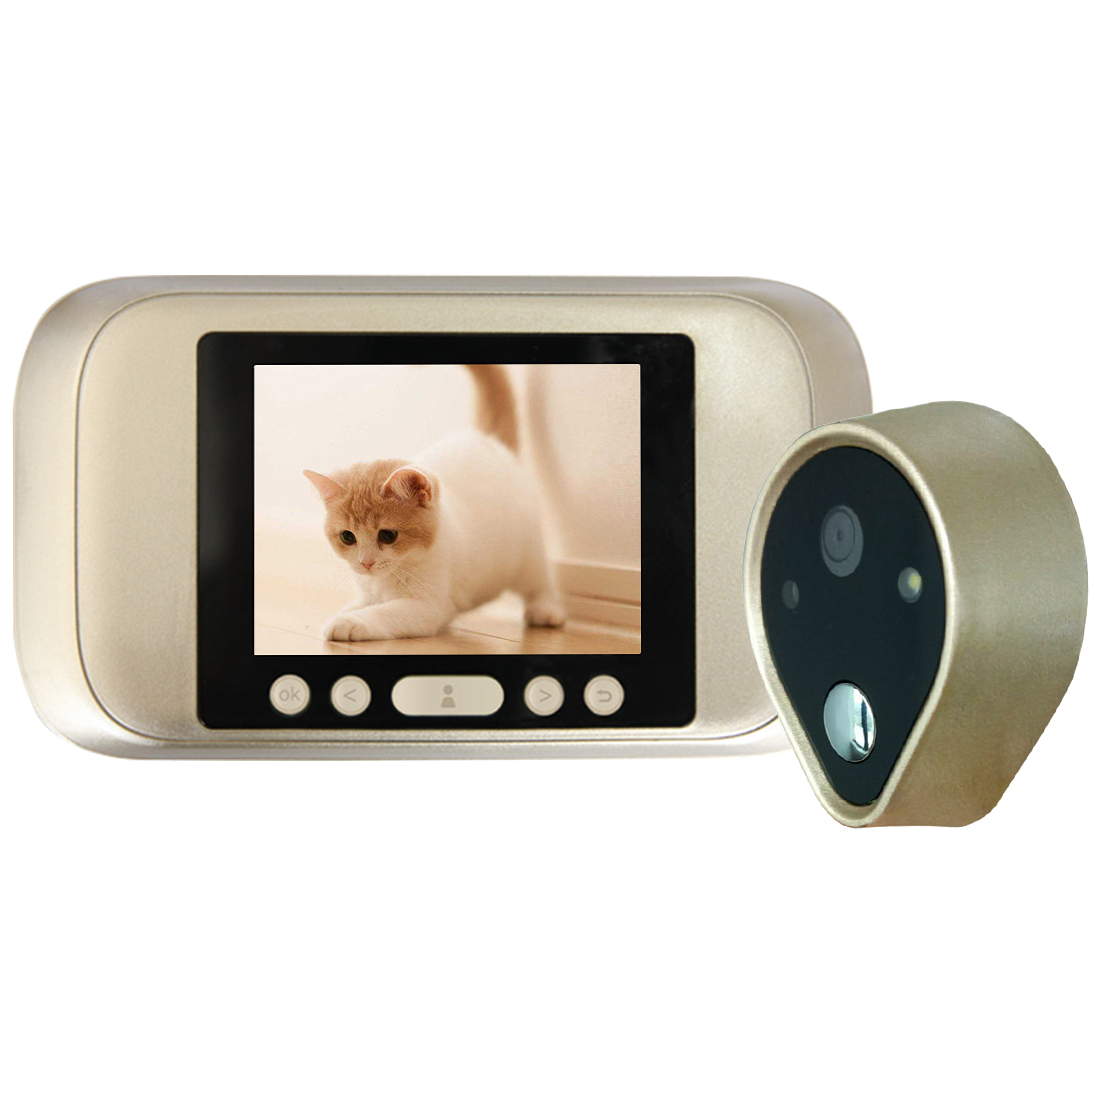 1pcs A32D 3.2 Inch Color Screen With Door Bell LED Lights Electronic Doorbell Door Viewer Home Security Peephole Door Camera x5 home smart doorbell security door peephole camera electronic cat eye and hd pixels tft color screen display audio door bell